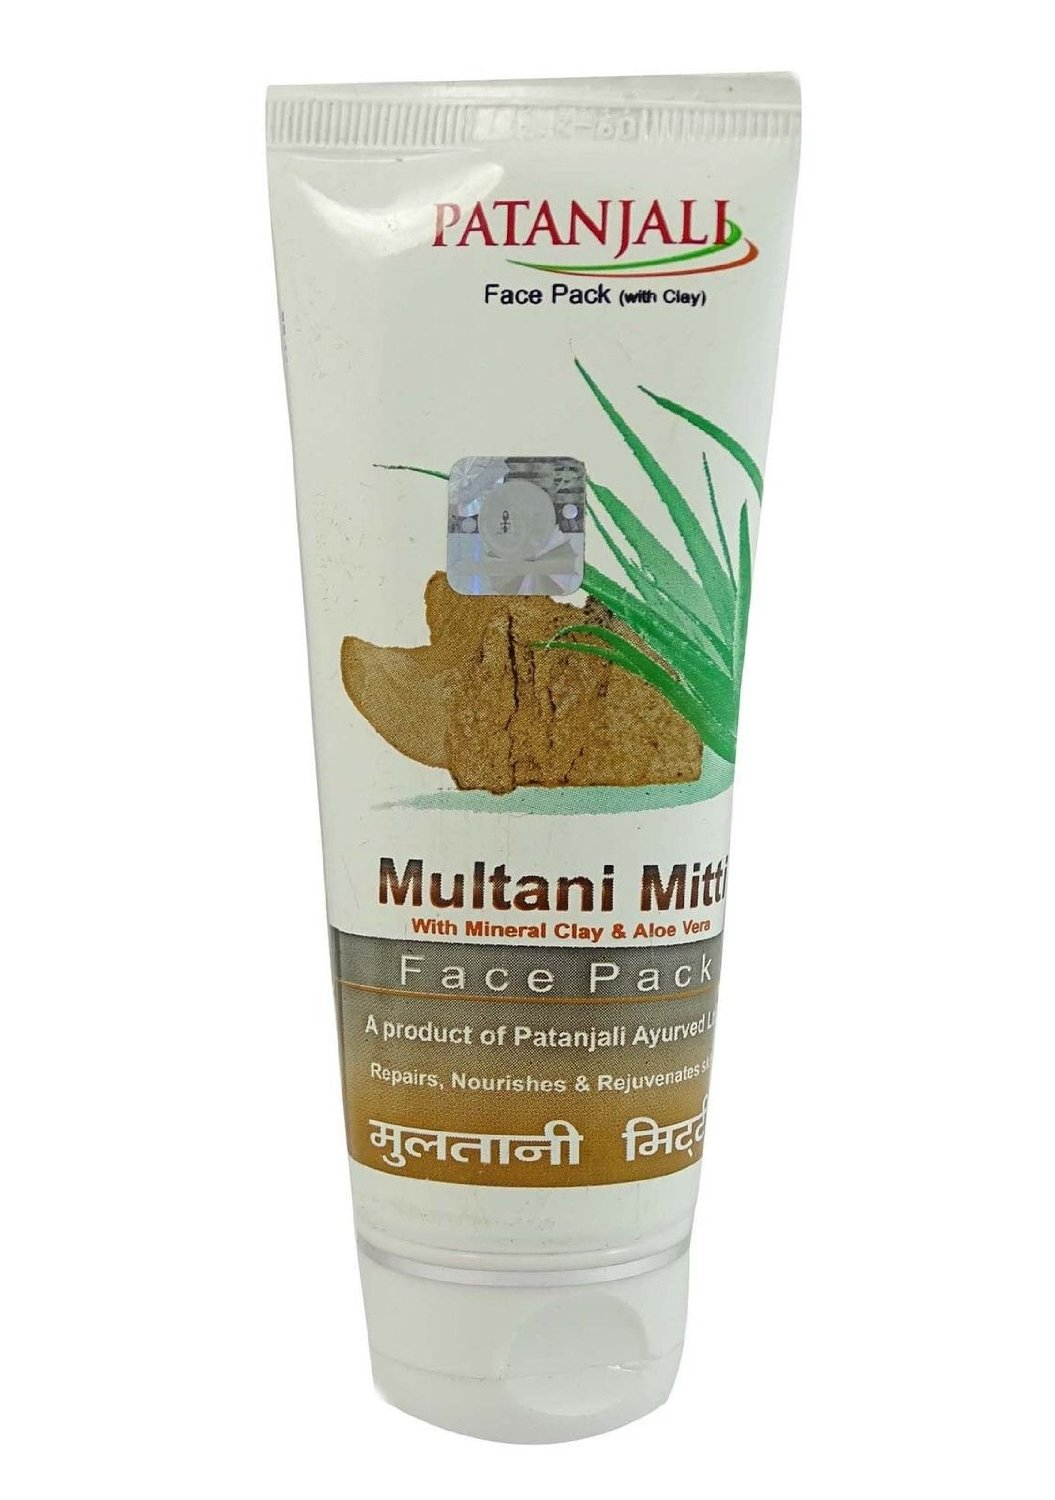 Review on Patanjali Multani Mitti Face Pack